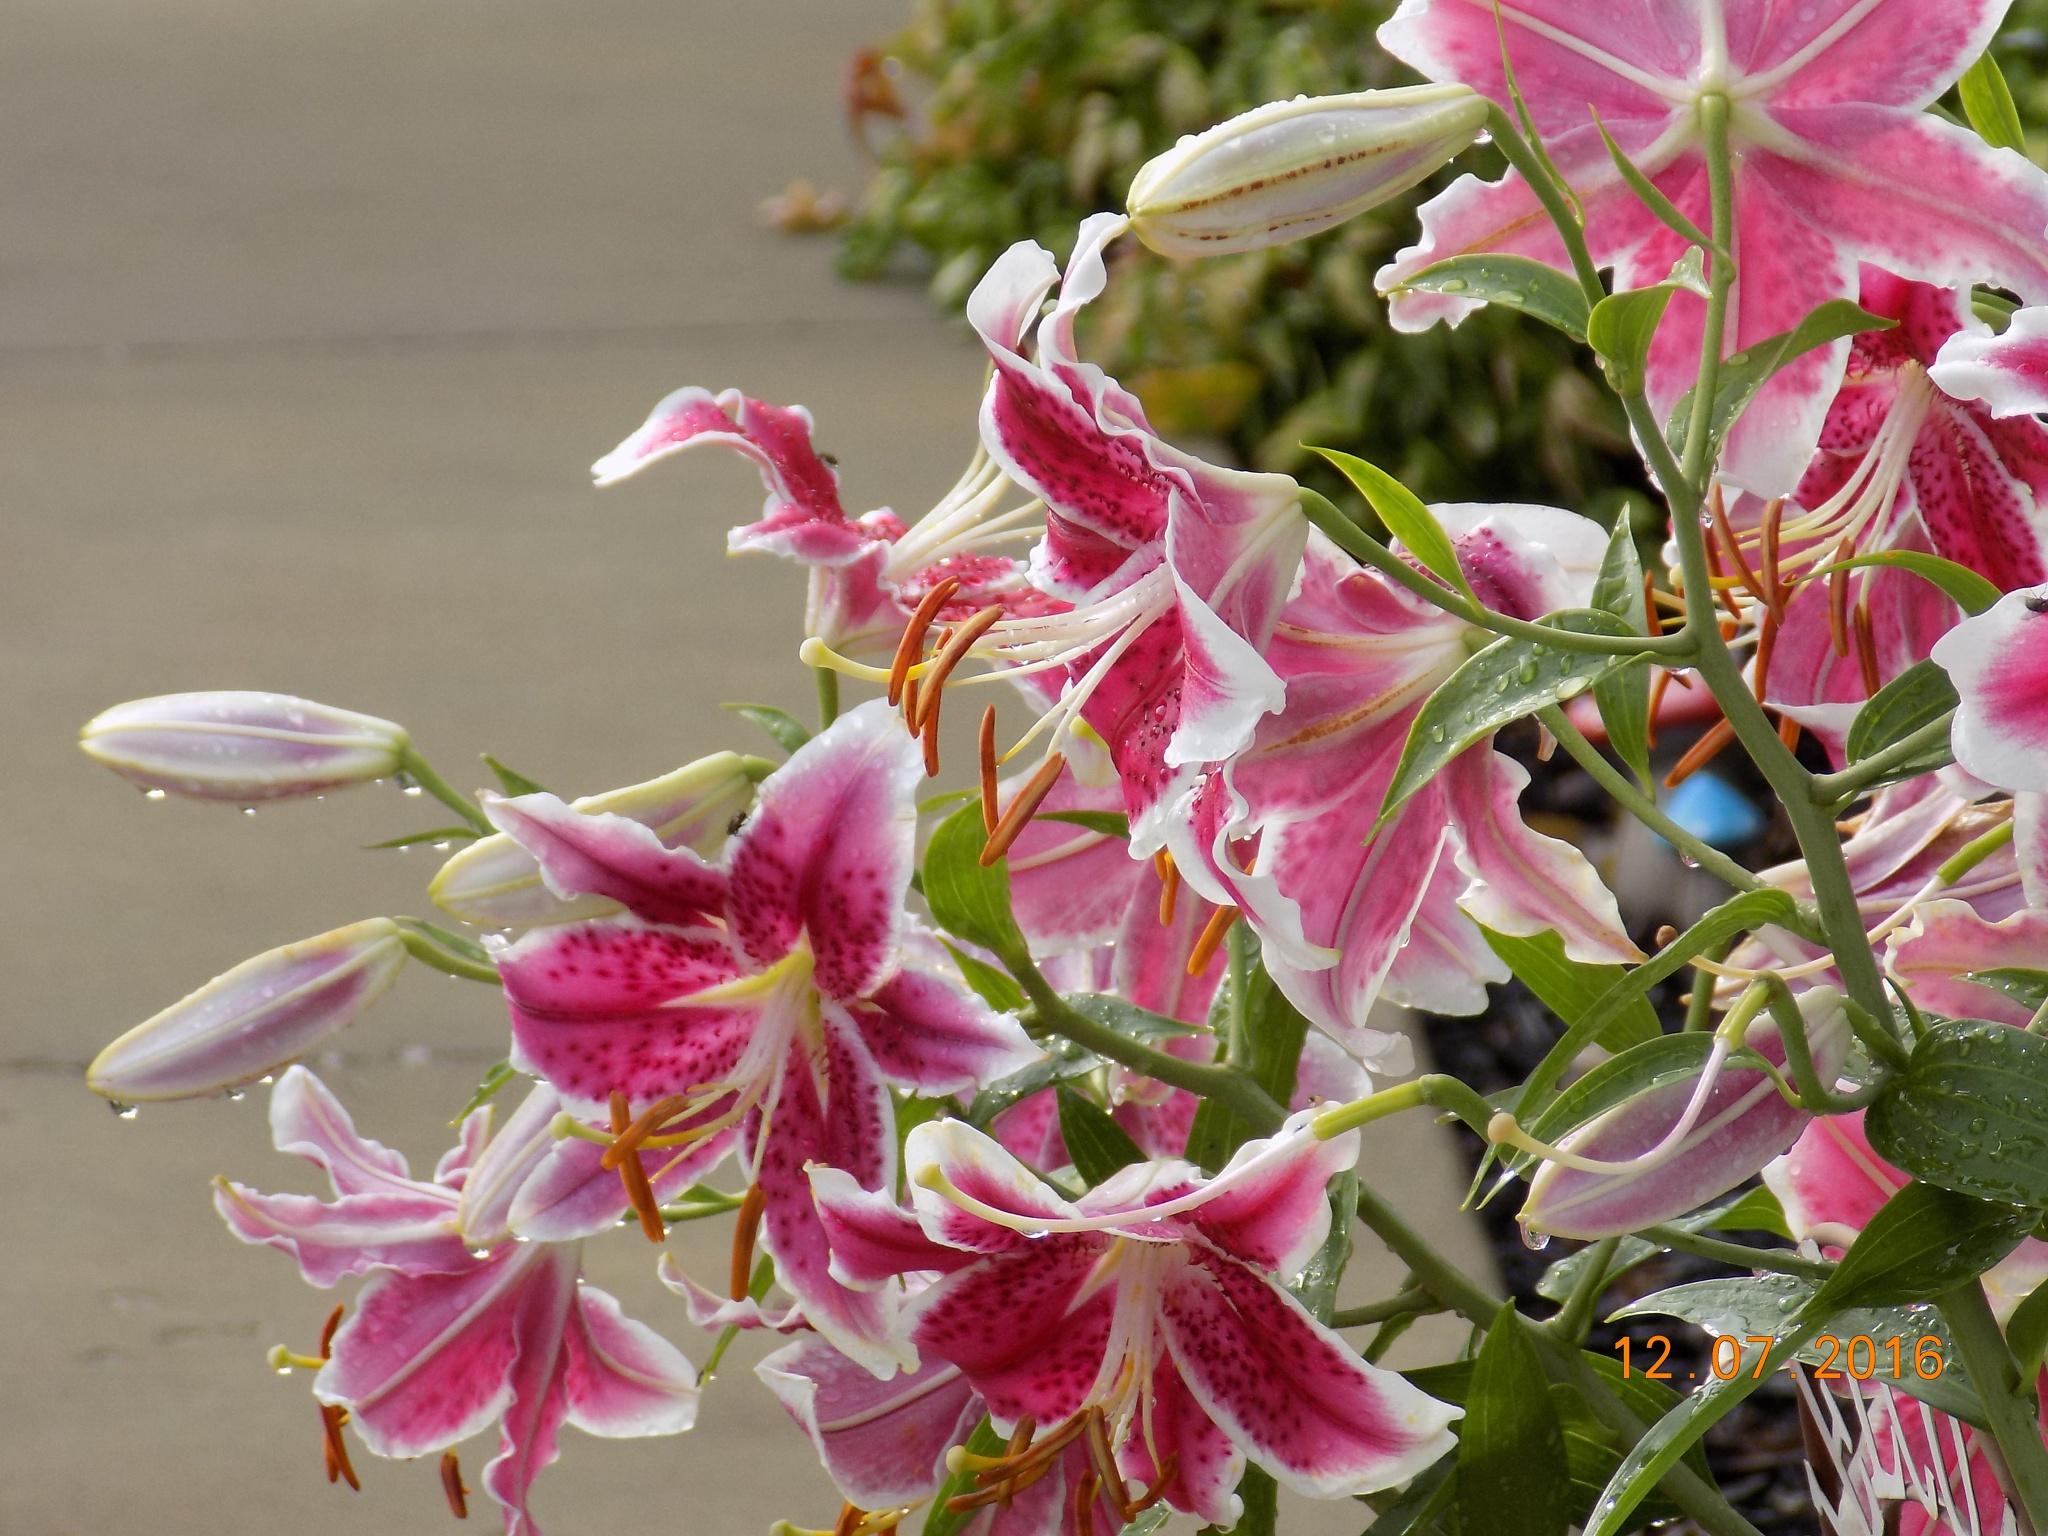 lilies after the rain shower by galepiper